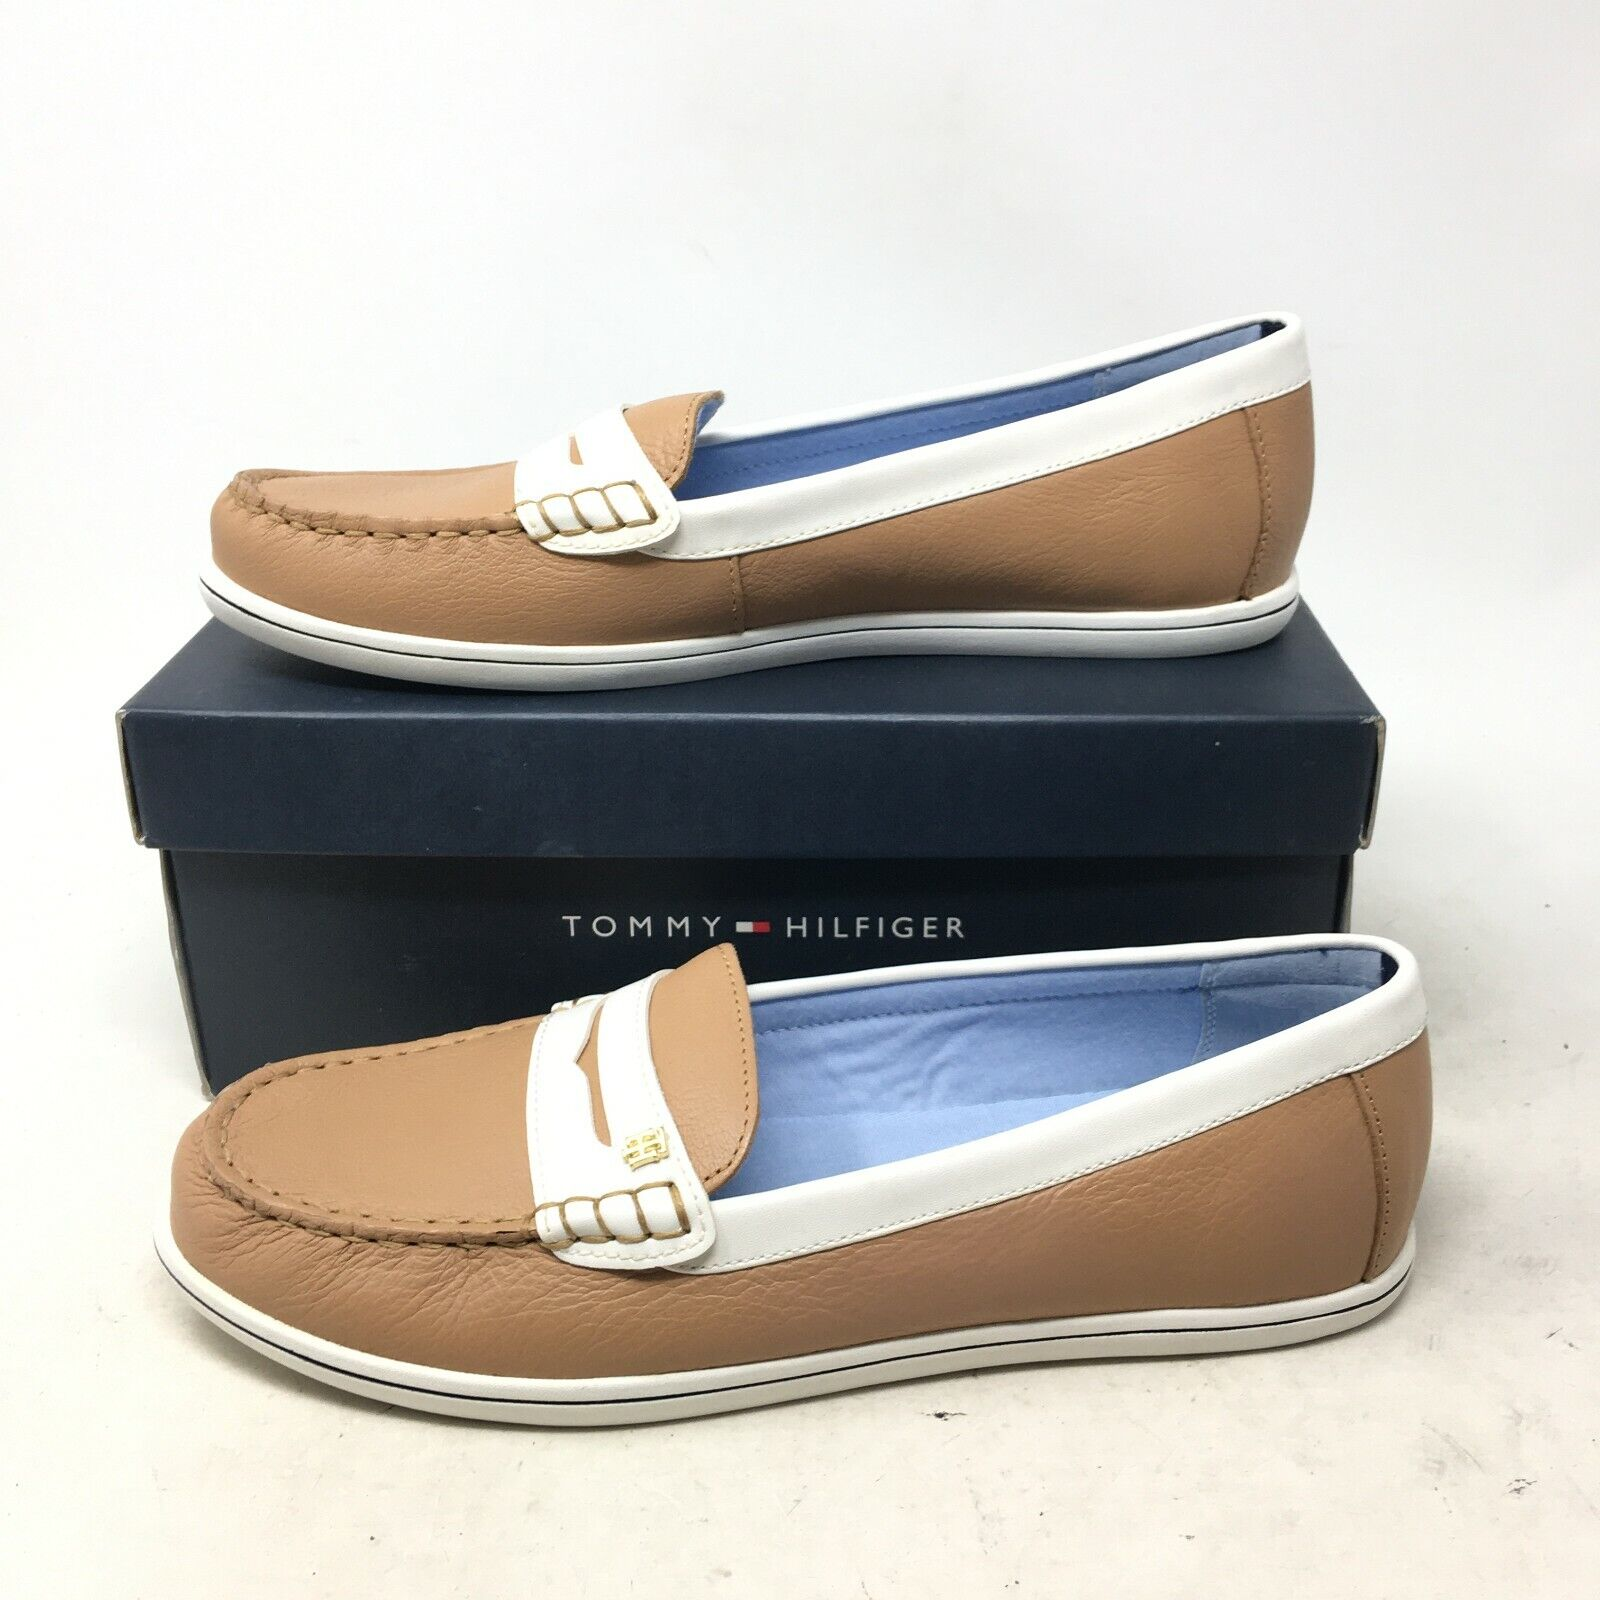 NEW Tommy Hilfiger Butter 4 Casual Loafers Slip On Shoes Leather Taupe Women 10M